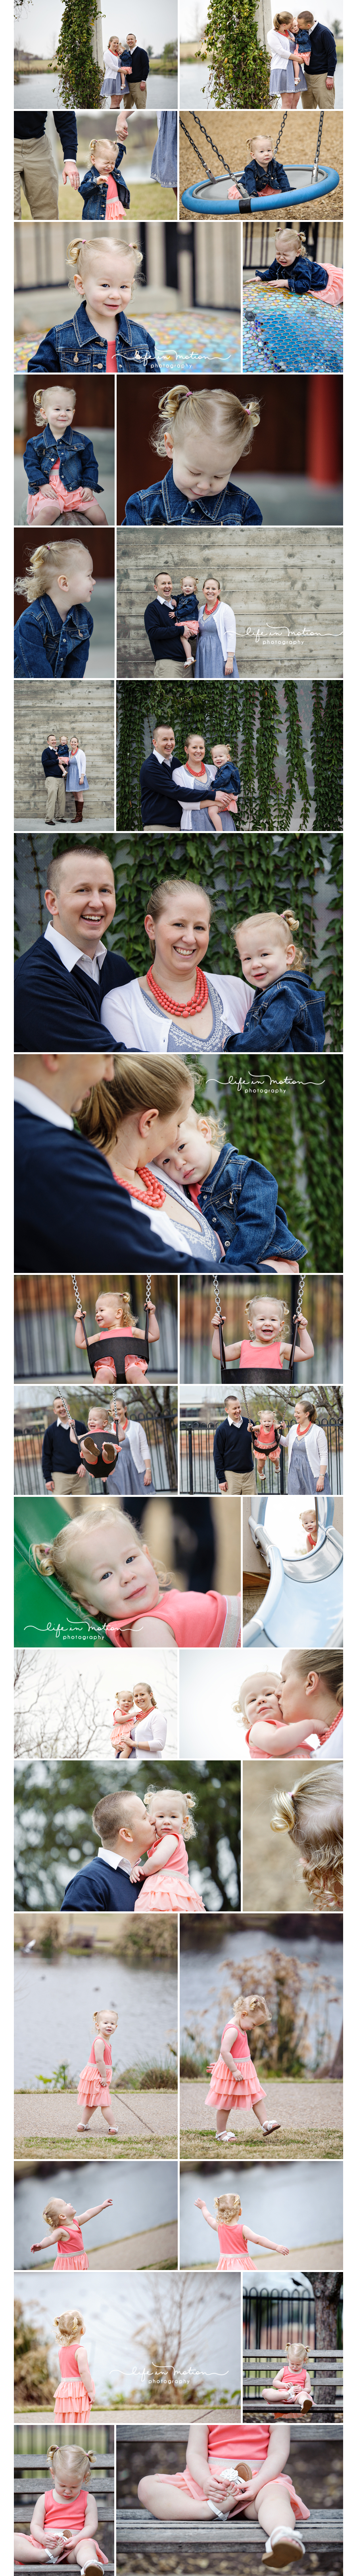 austin toddler and family photographer